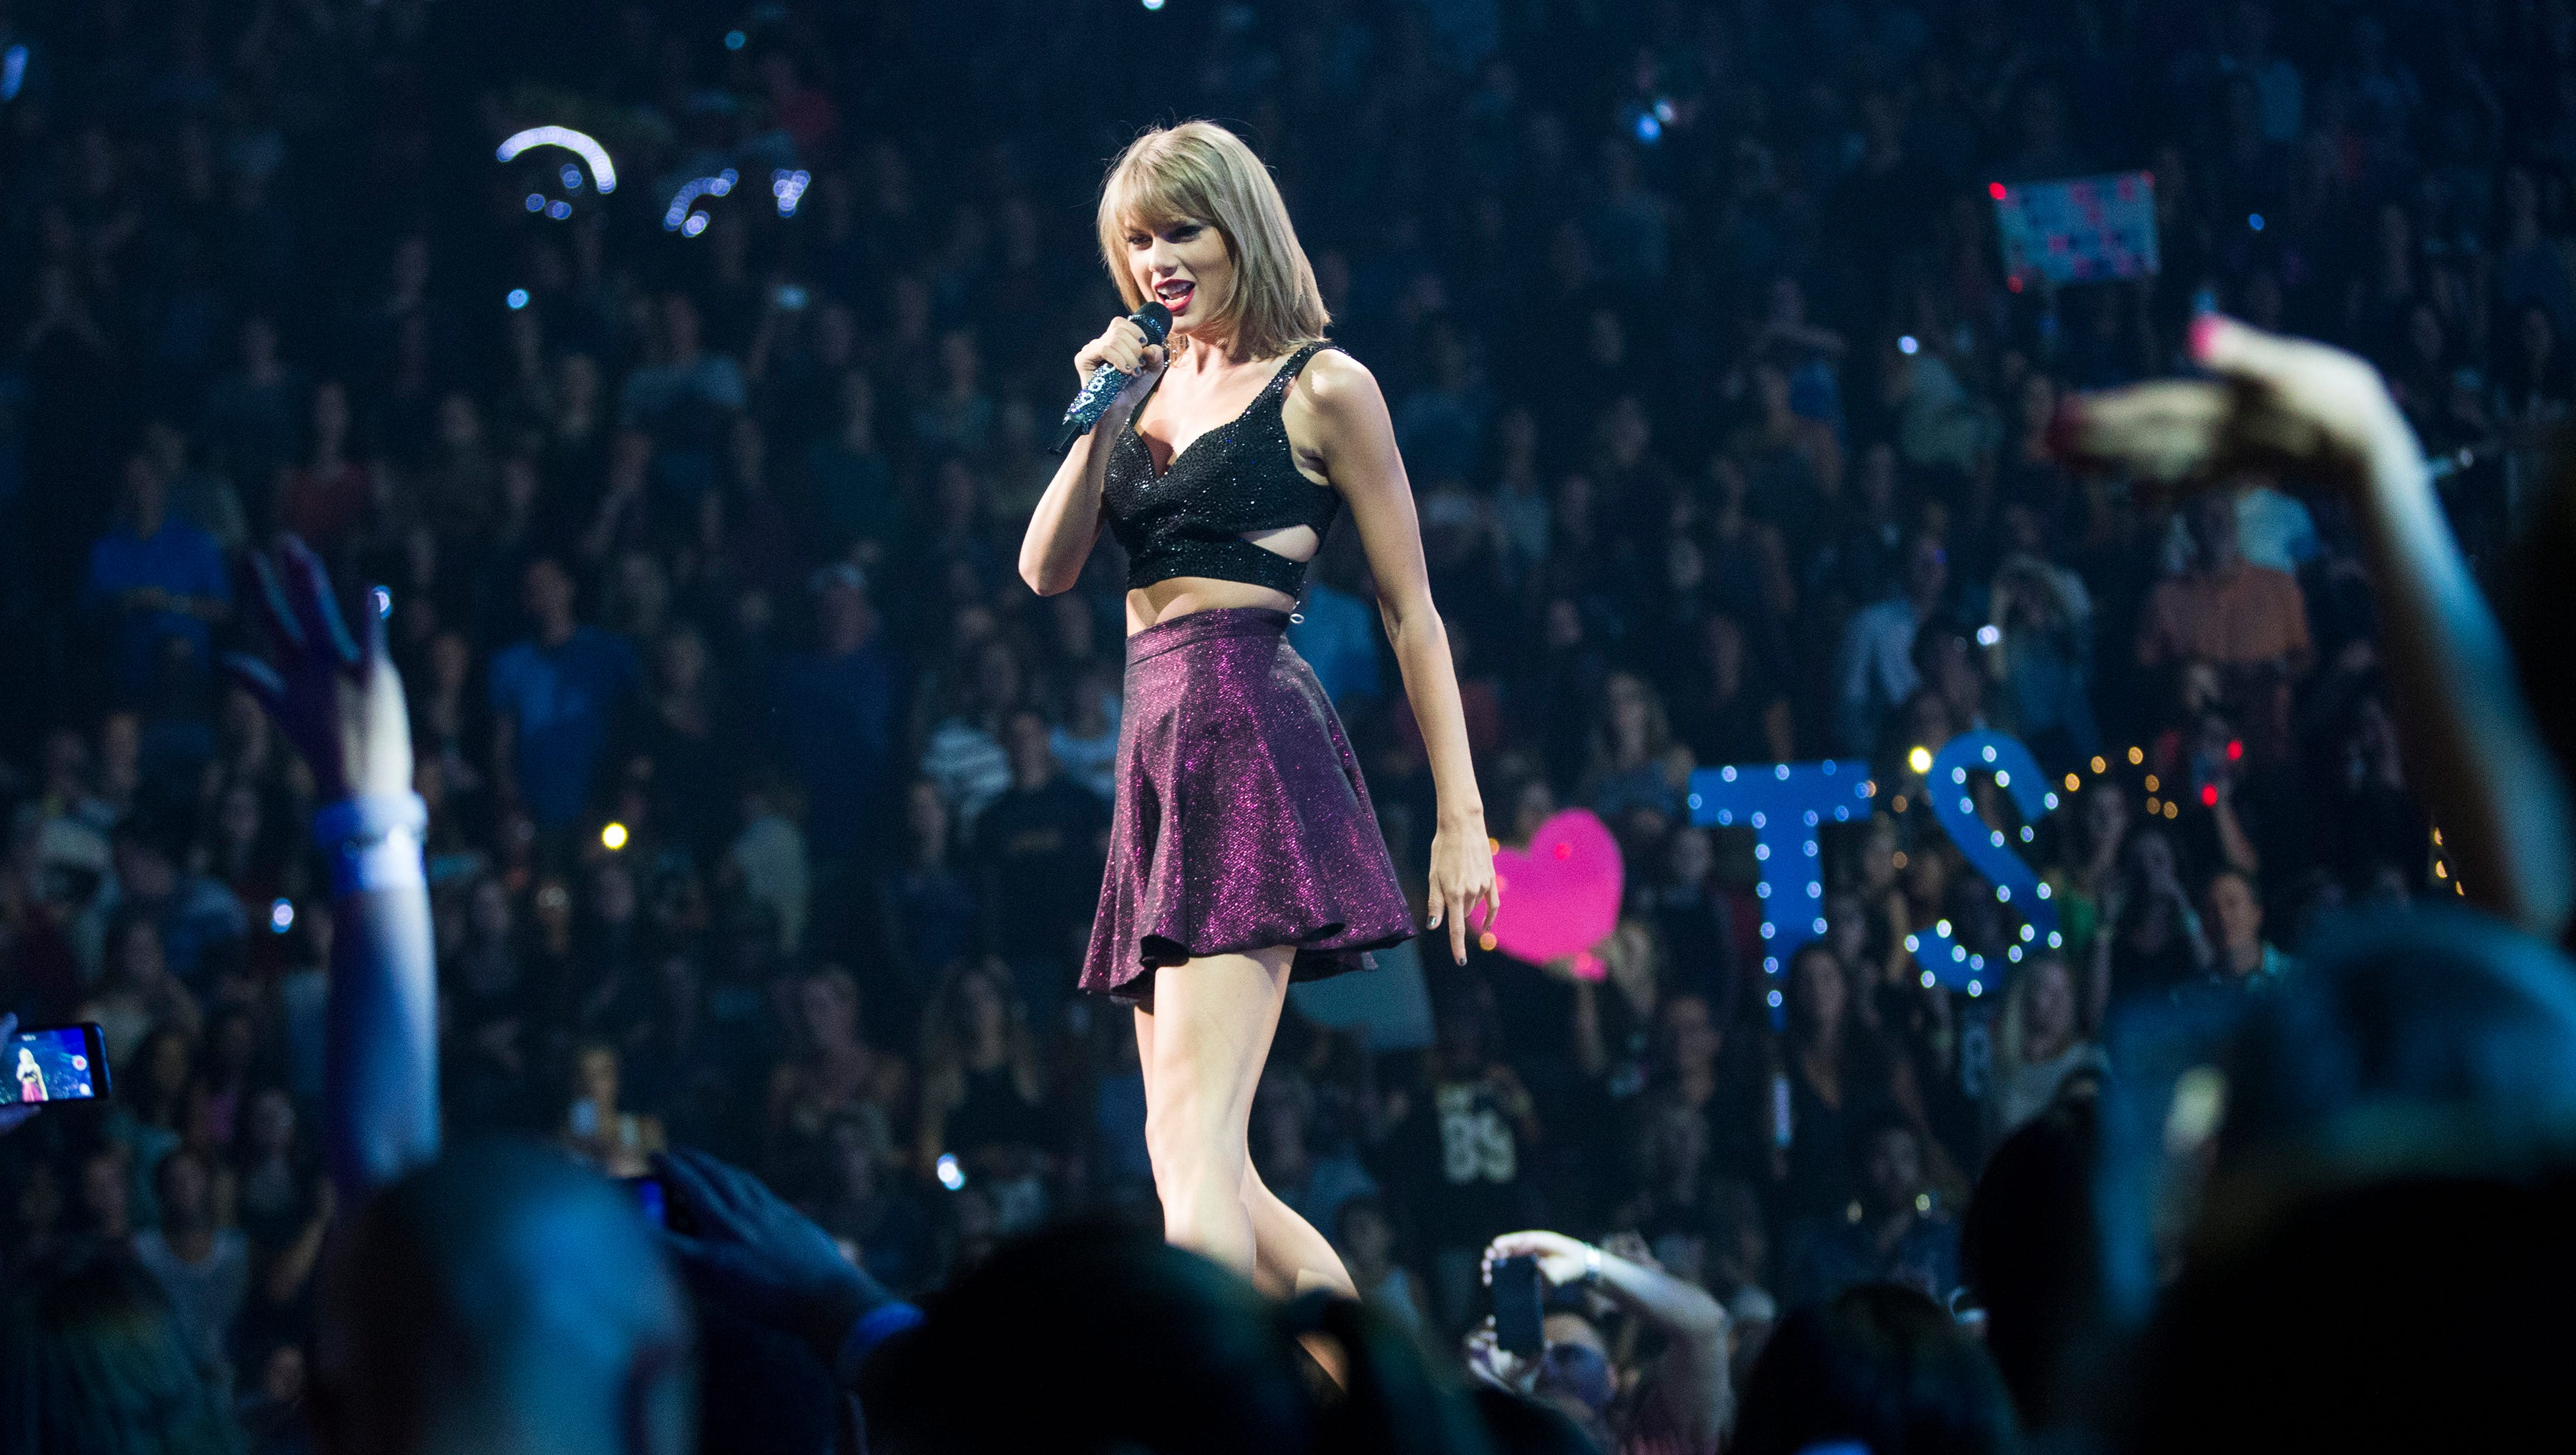 Taylor Swift Shakes Off Her Country Roots On 1989 Tour